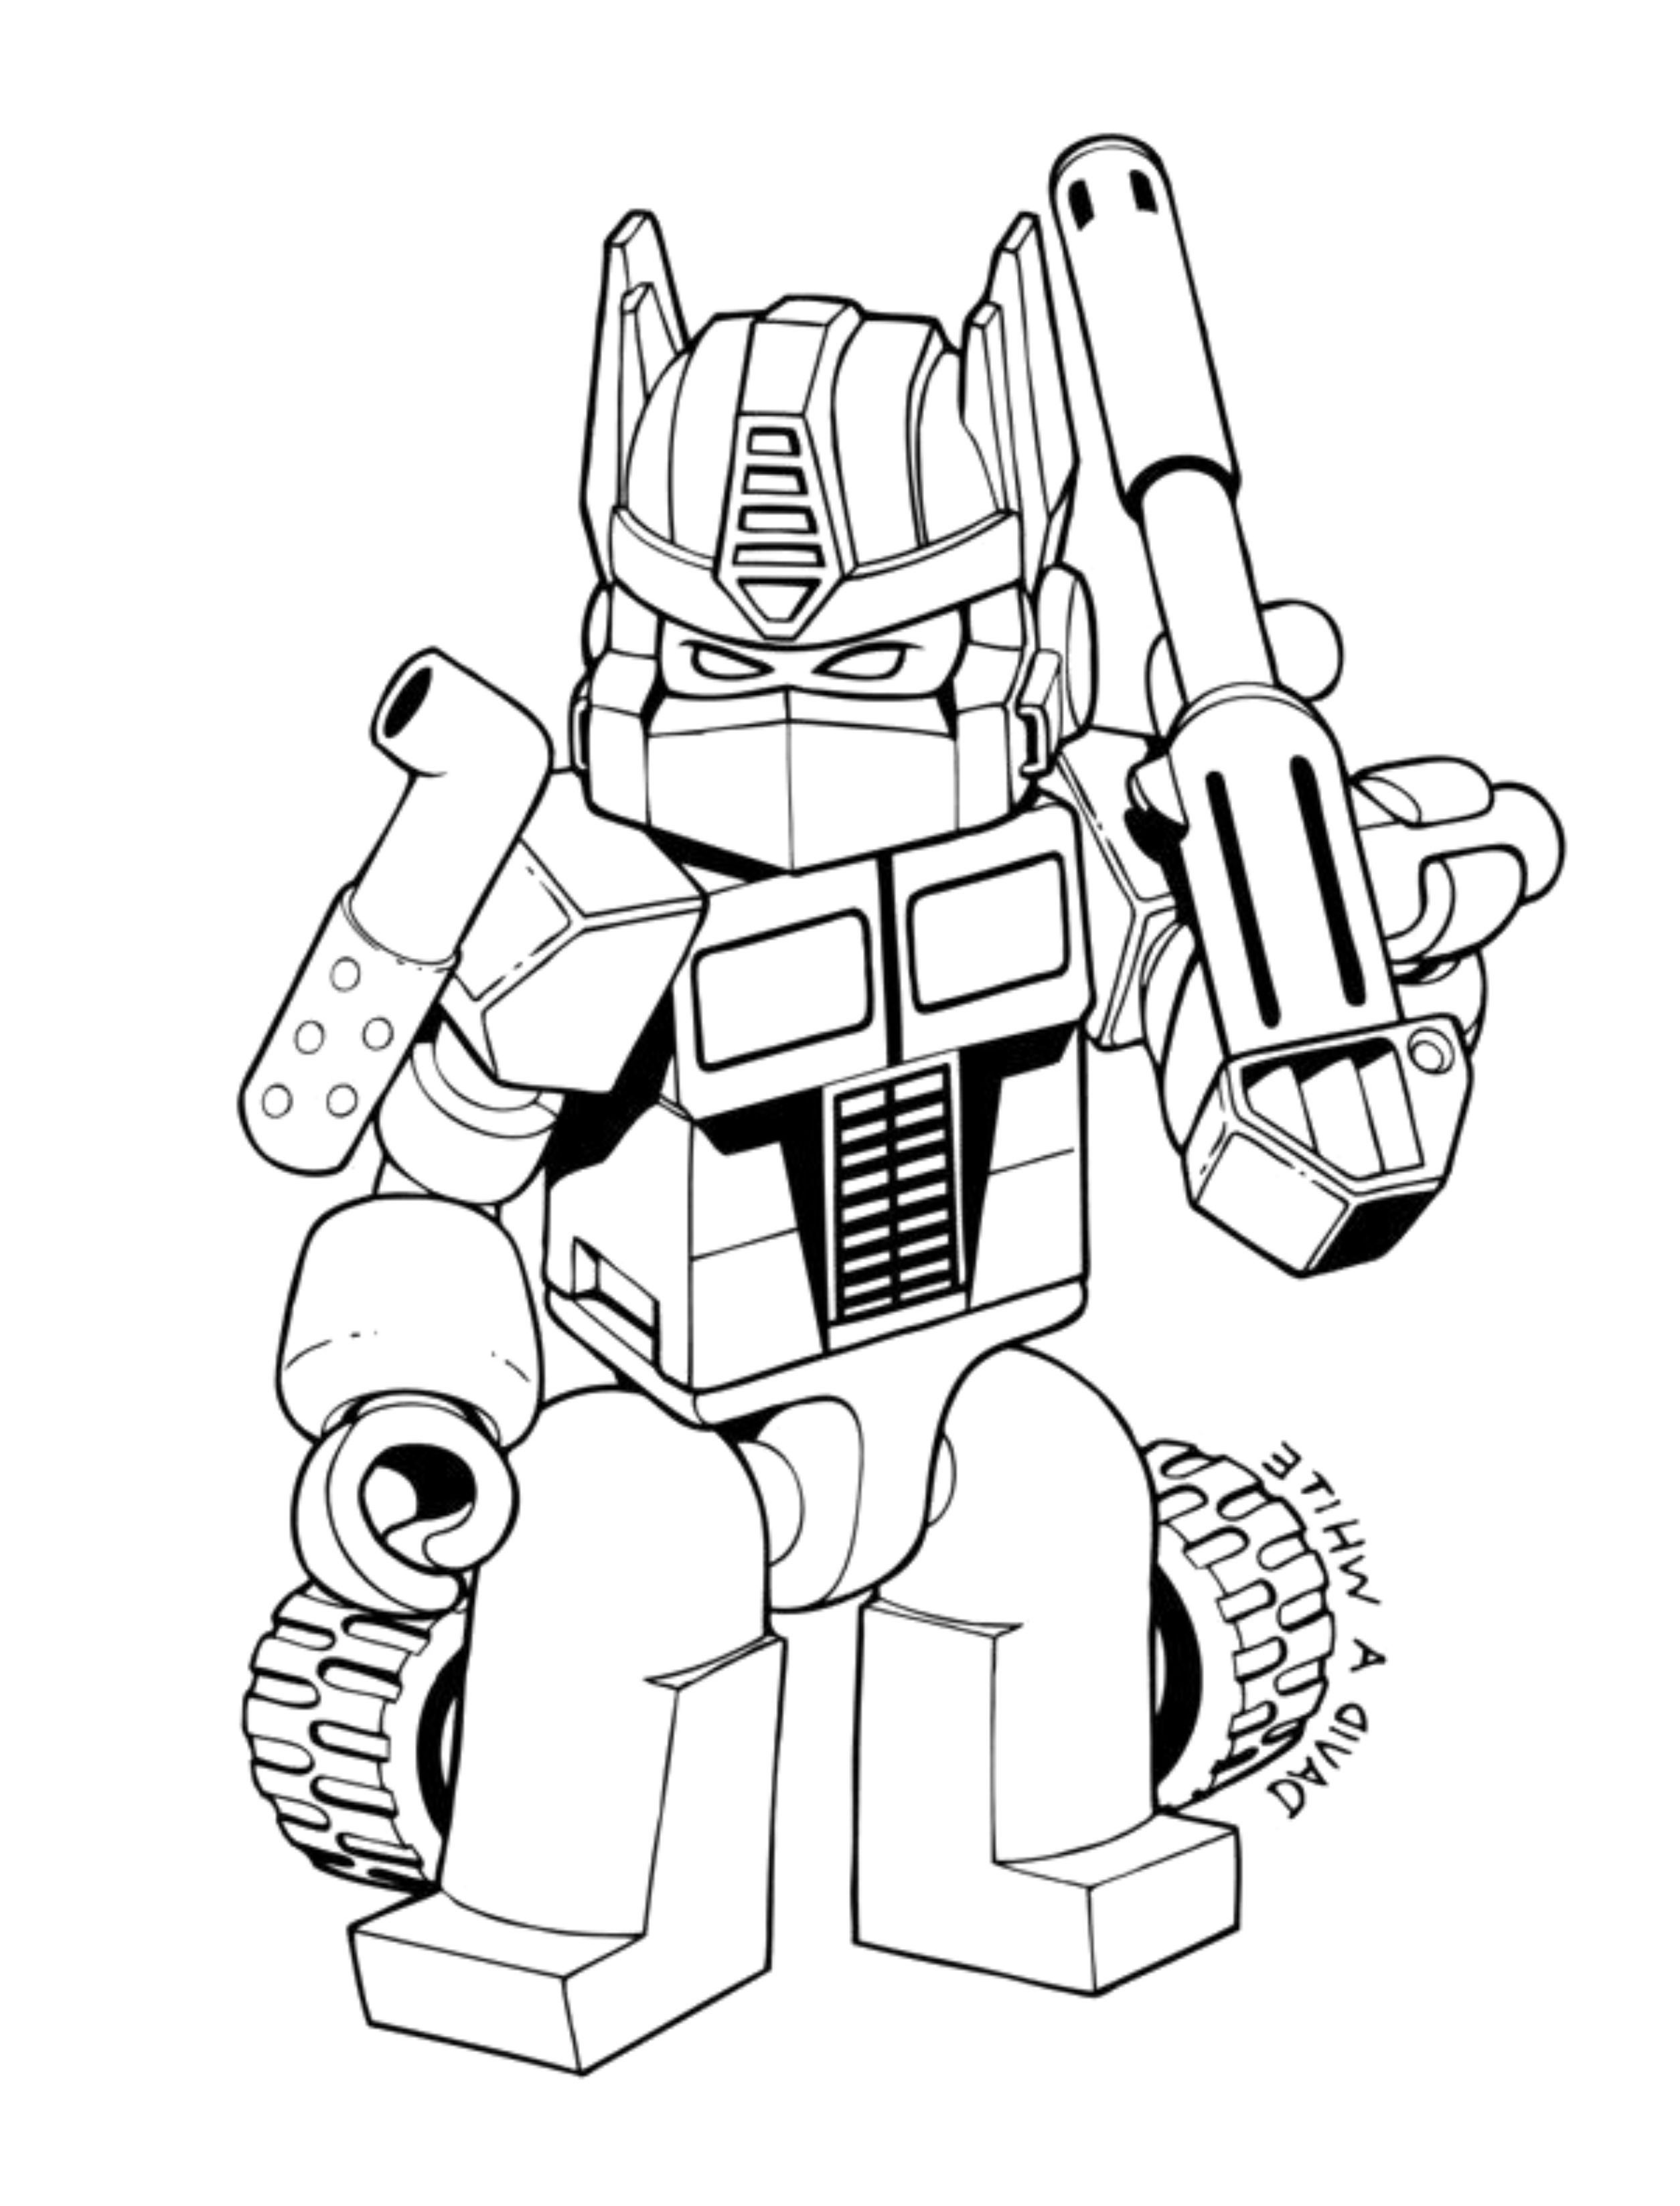 10 Transformer Colouring Lego Coloring Pages Transformers Coloring Pages Coloring Pages For Boys